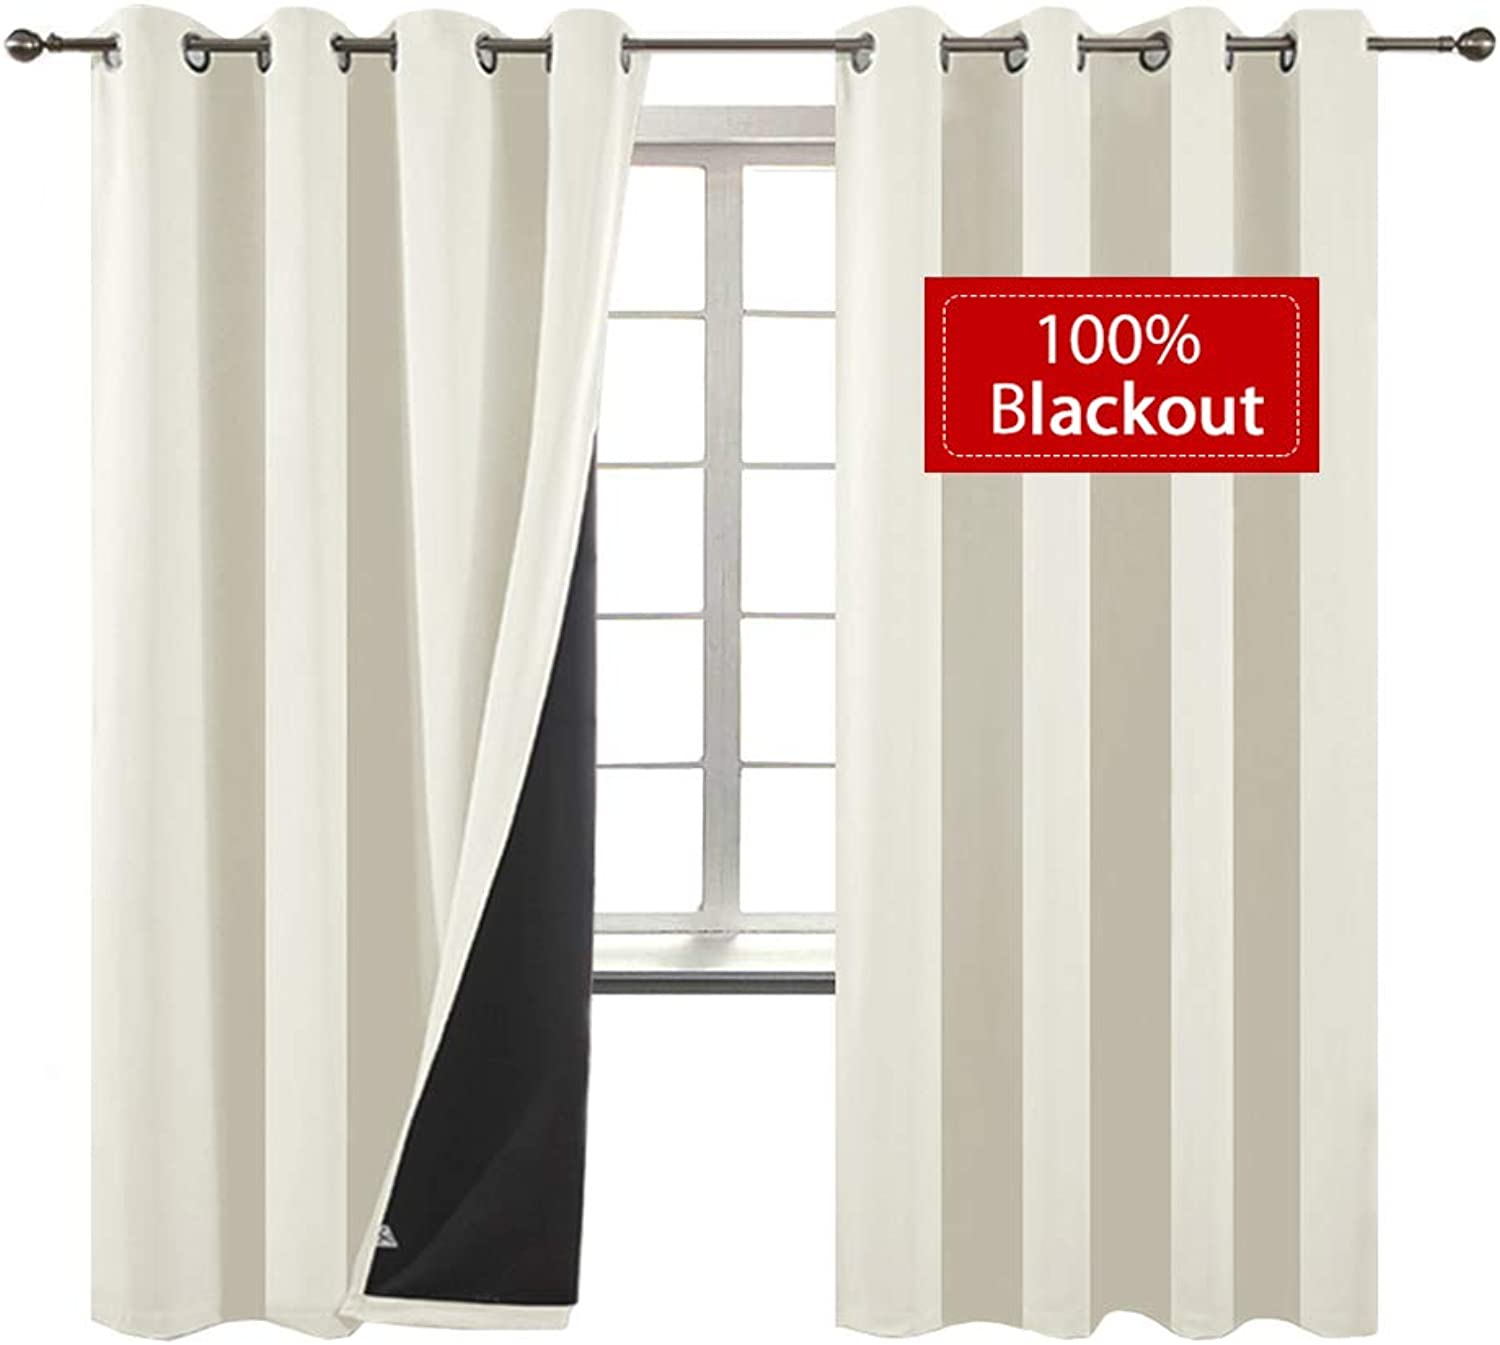 Yakamok 100% Blackout Curtains Thermal Insulated Soundproof Curtains with Black Liner for Bedroom Heat Blocking Drapes for Living Room(52Wx96L, Cream, 2 Panels)